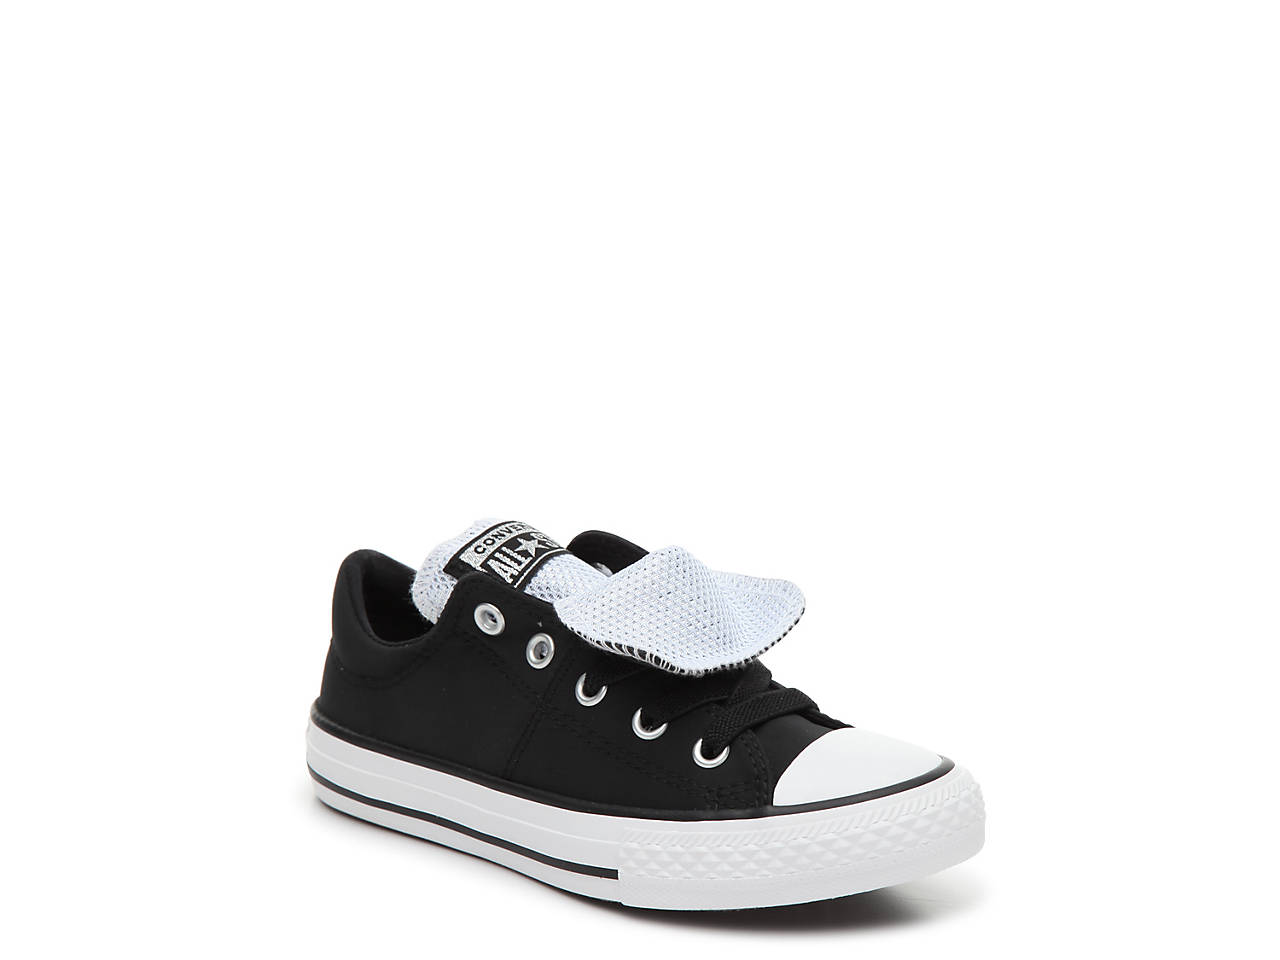 Chuck Taylor All Star Maddie Toddler & Youth Slip On Sneaker